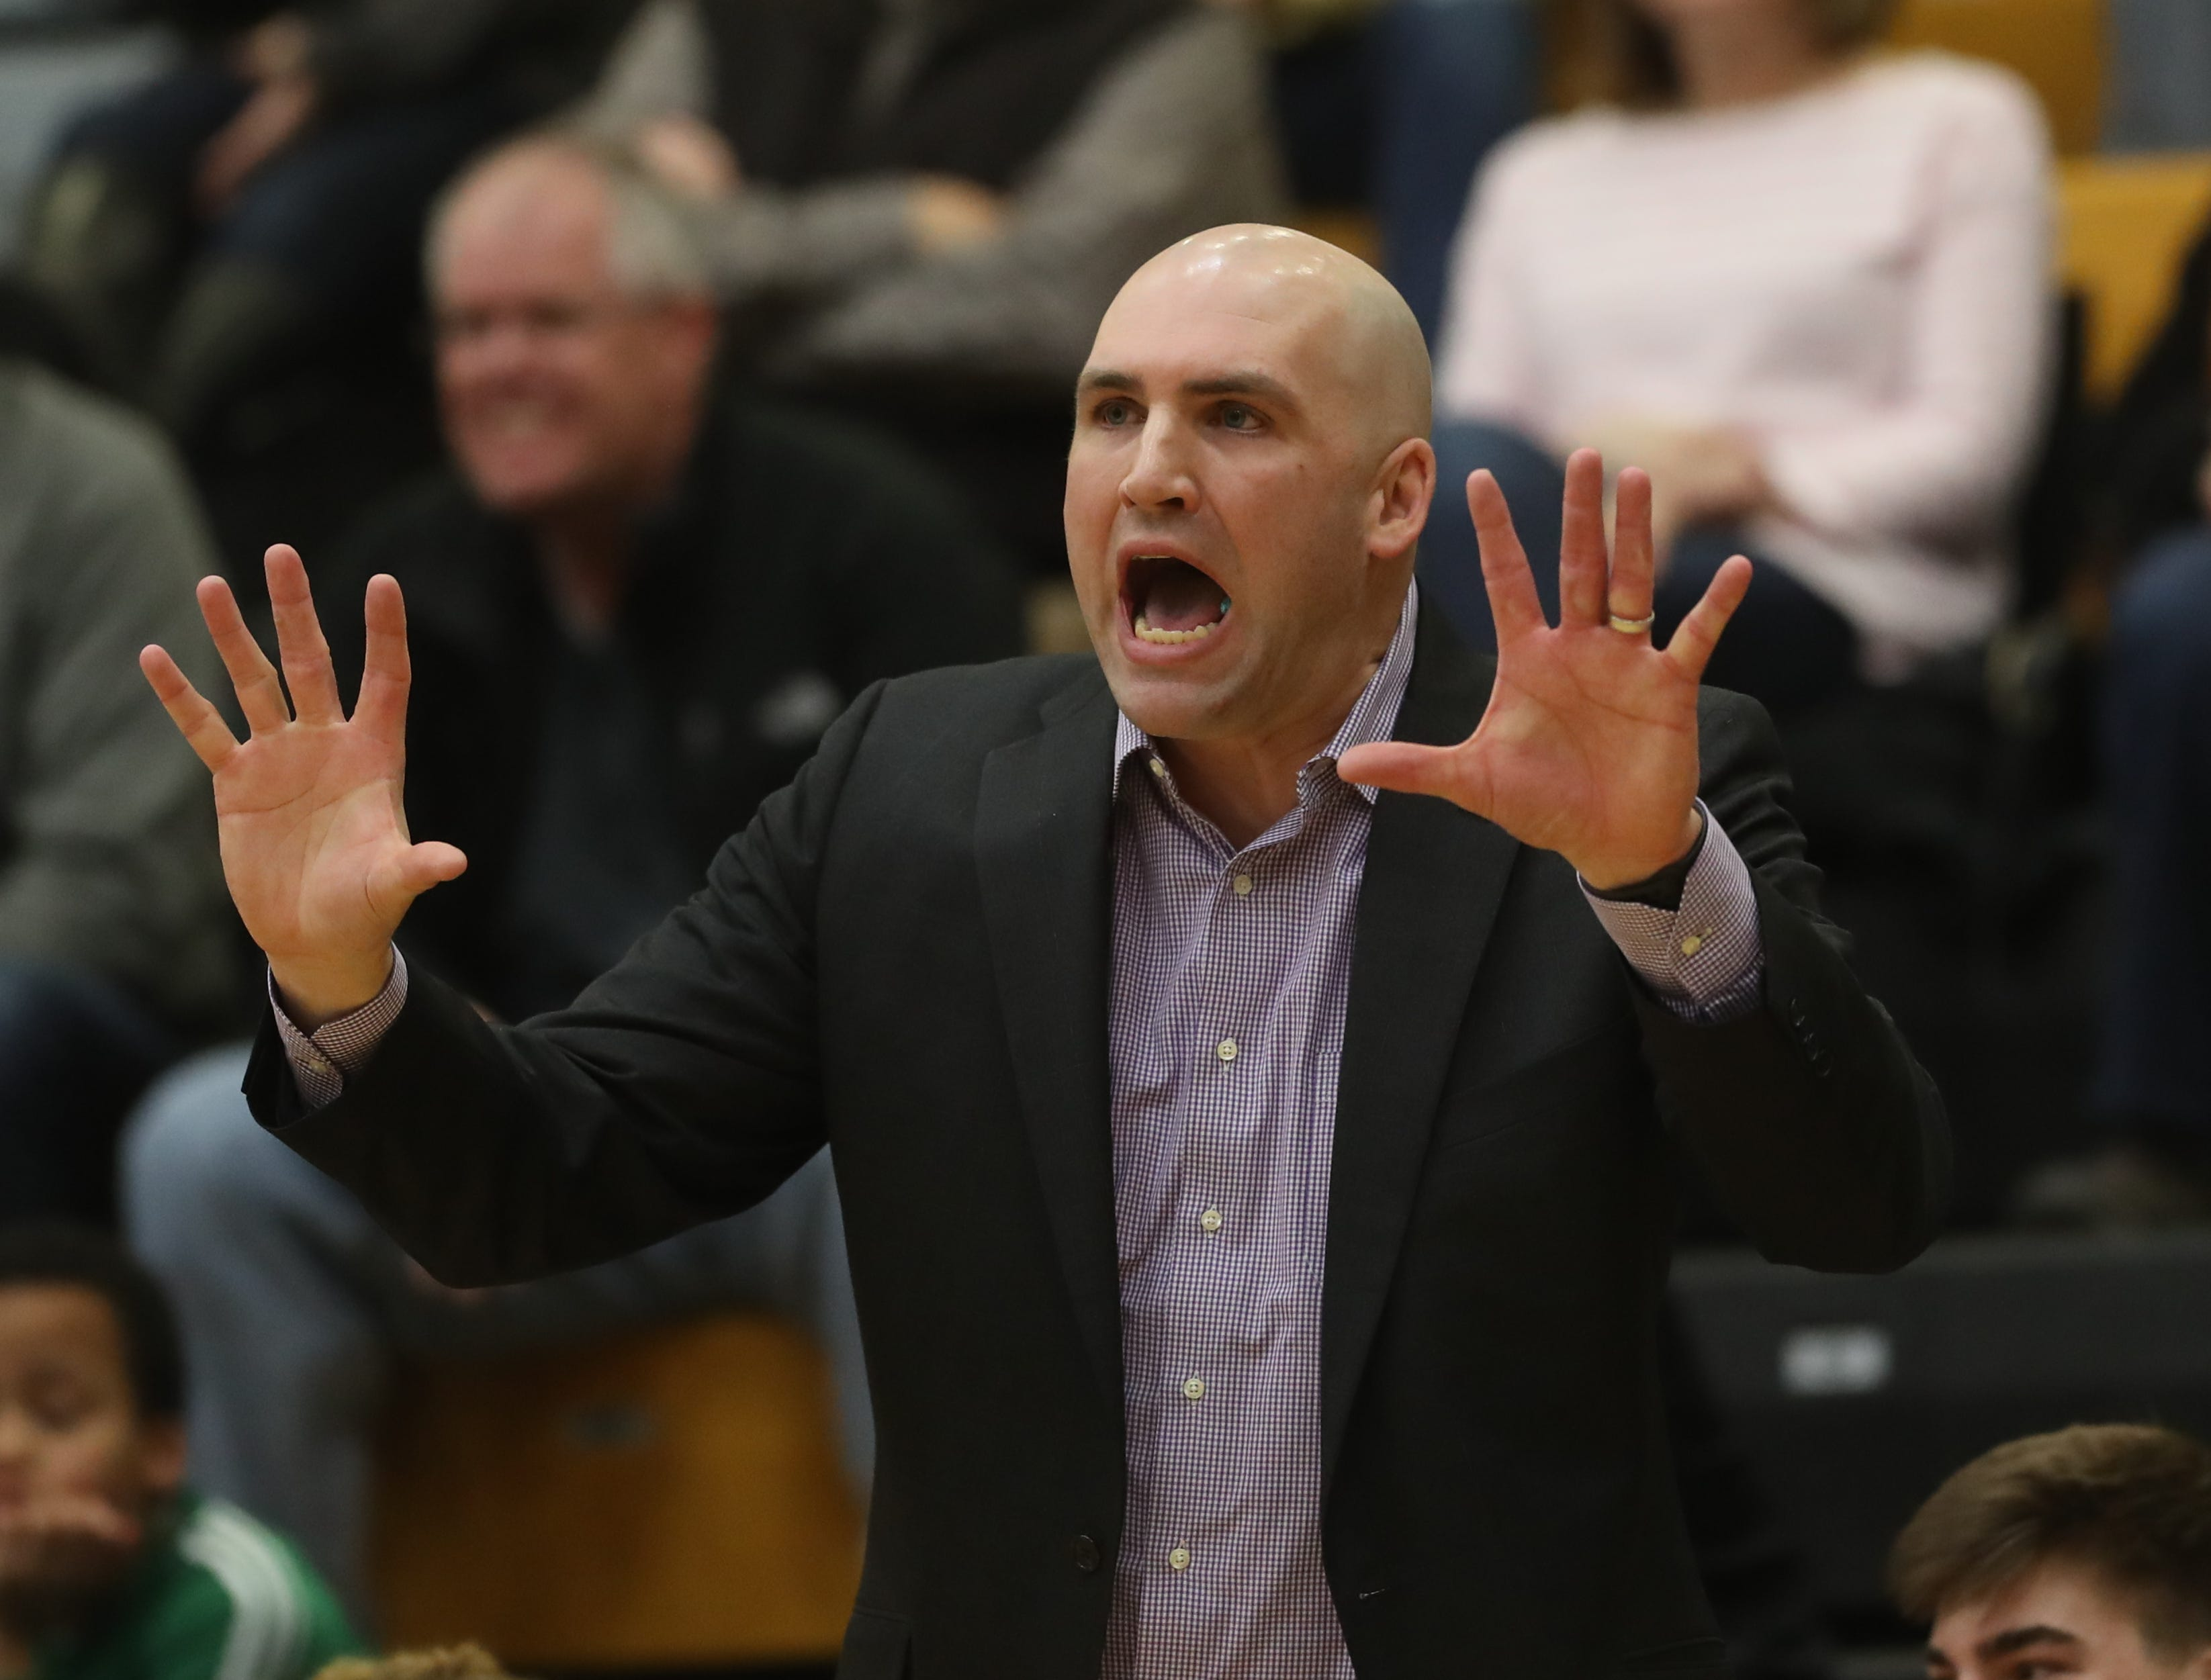 Waukee Coach Justin Ohlat watches his team during a game on Feb. 1, 2019 at Southeast Polk High School.